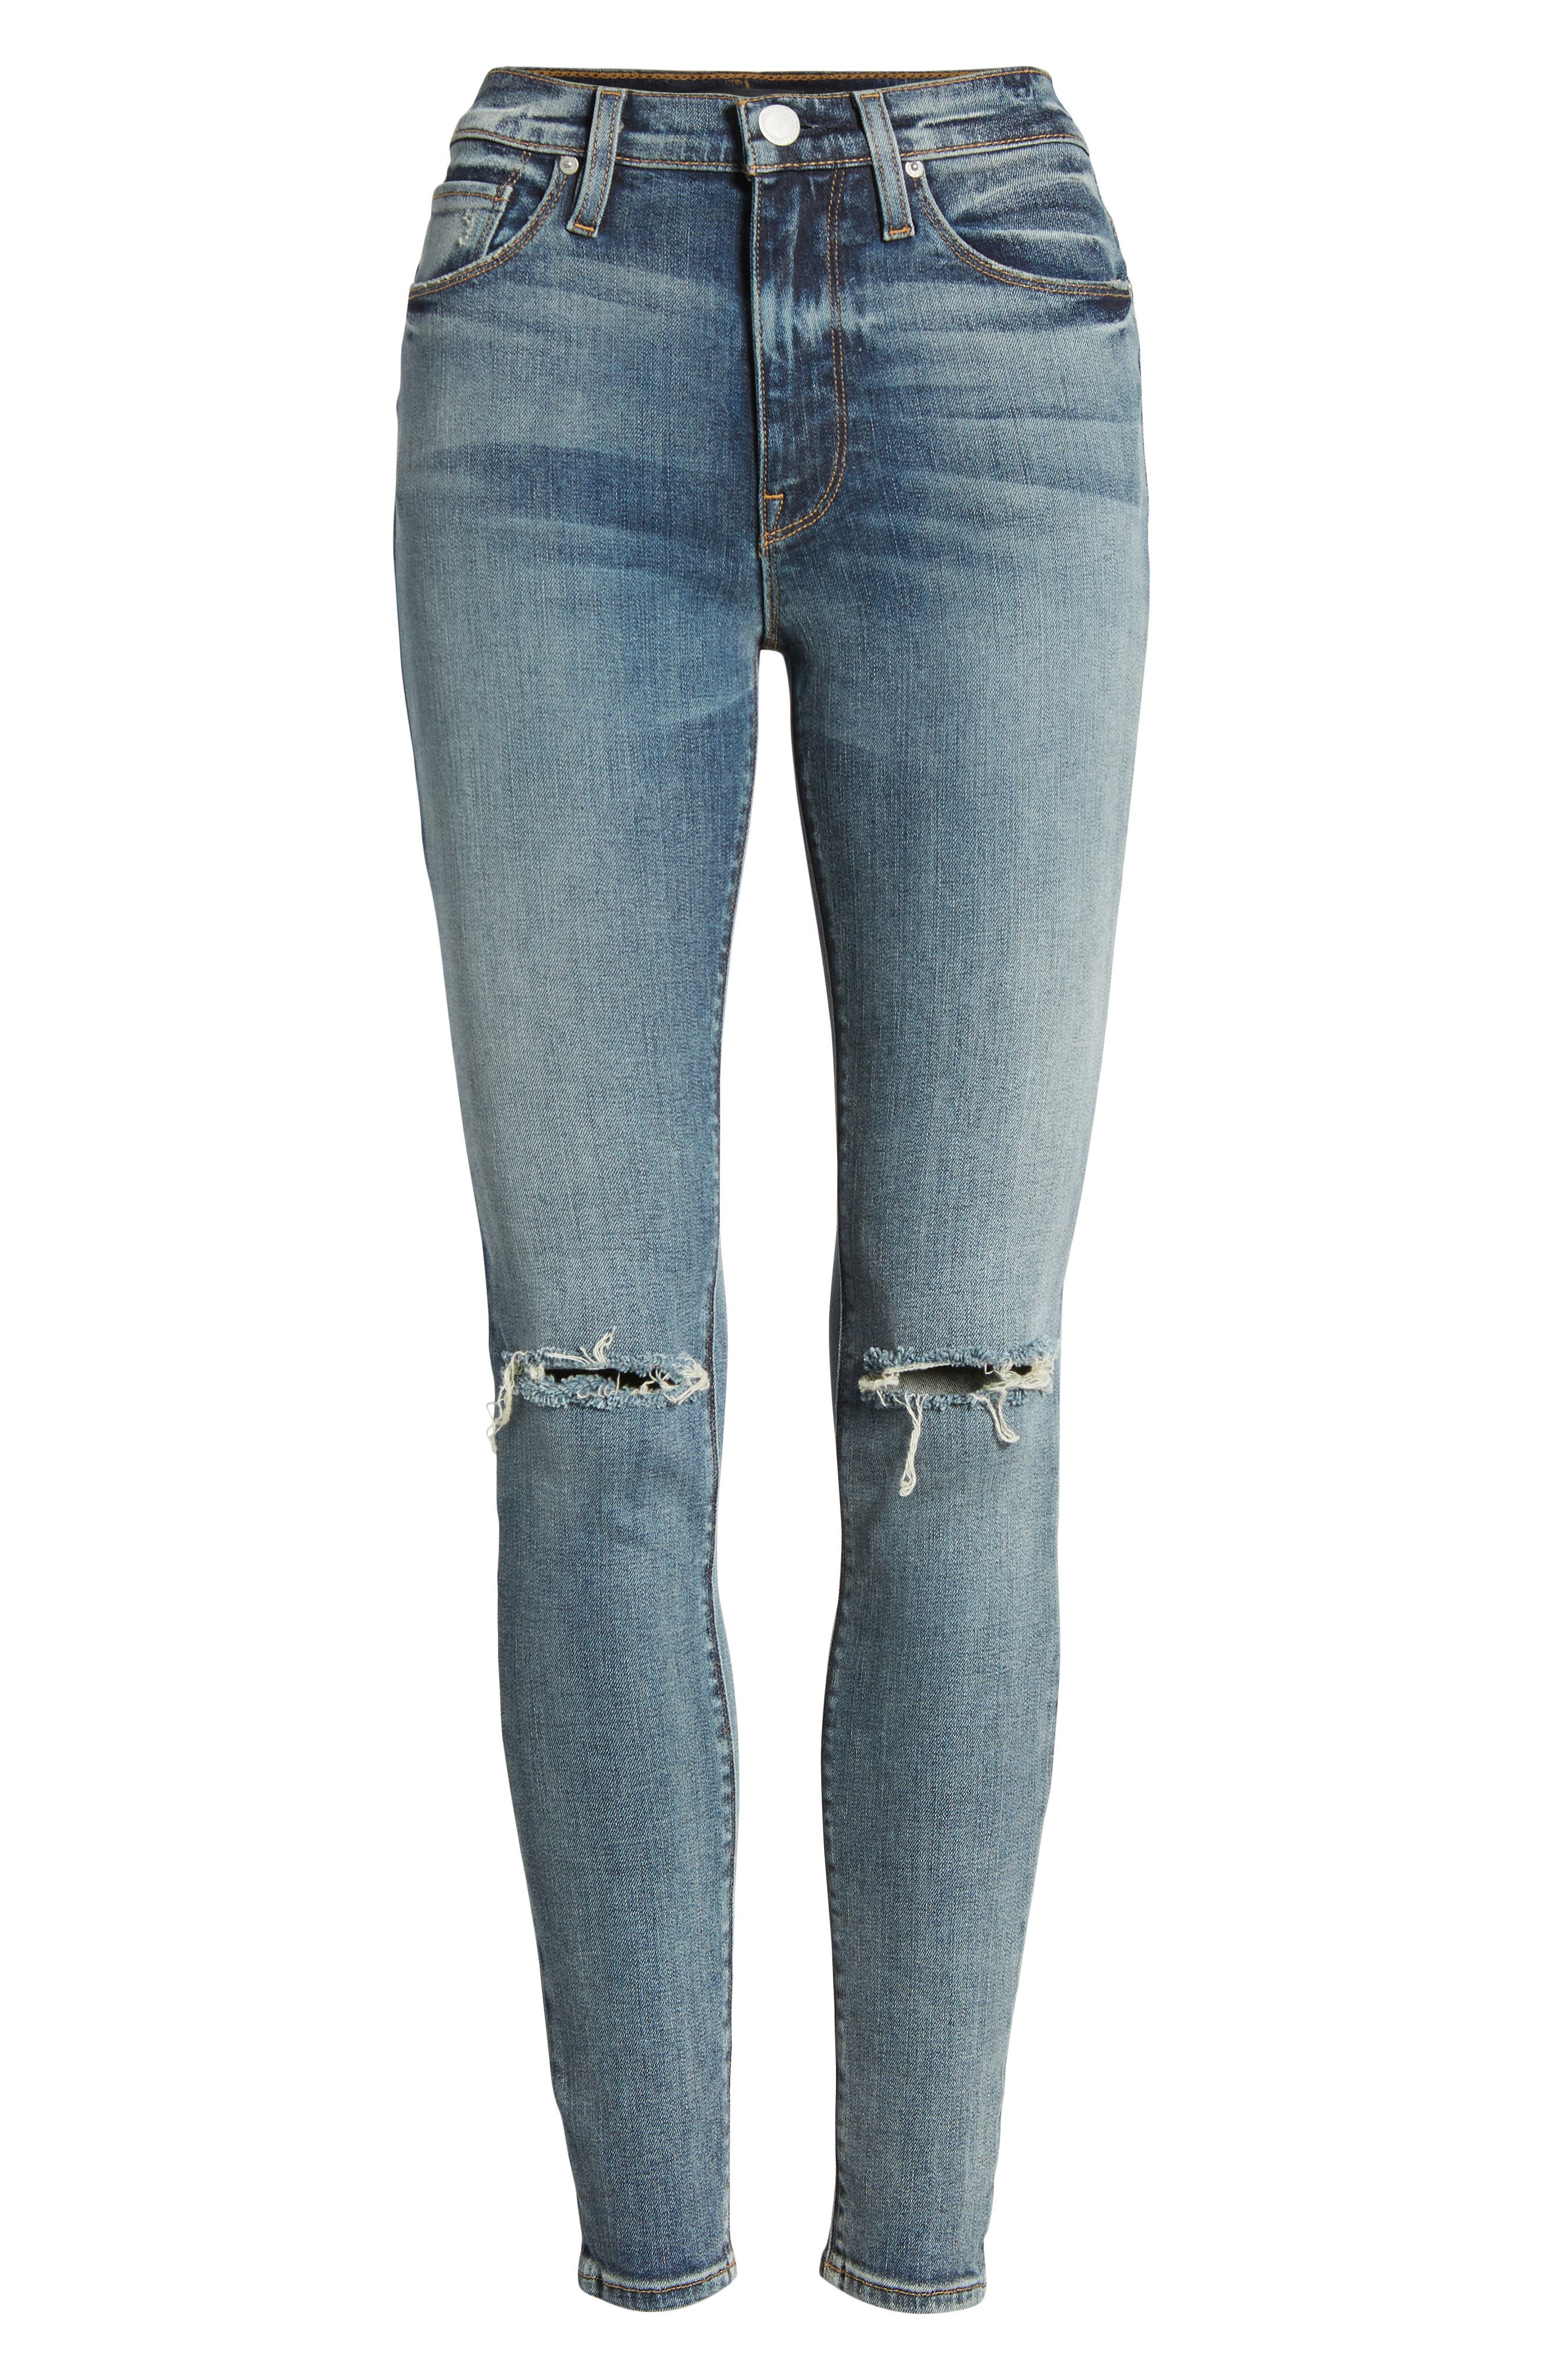 Barbara High Waist Super Skinny Jeans,                             Alternate thumbnail 7, color,                             420